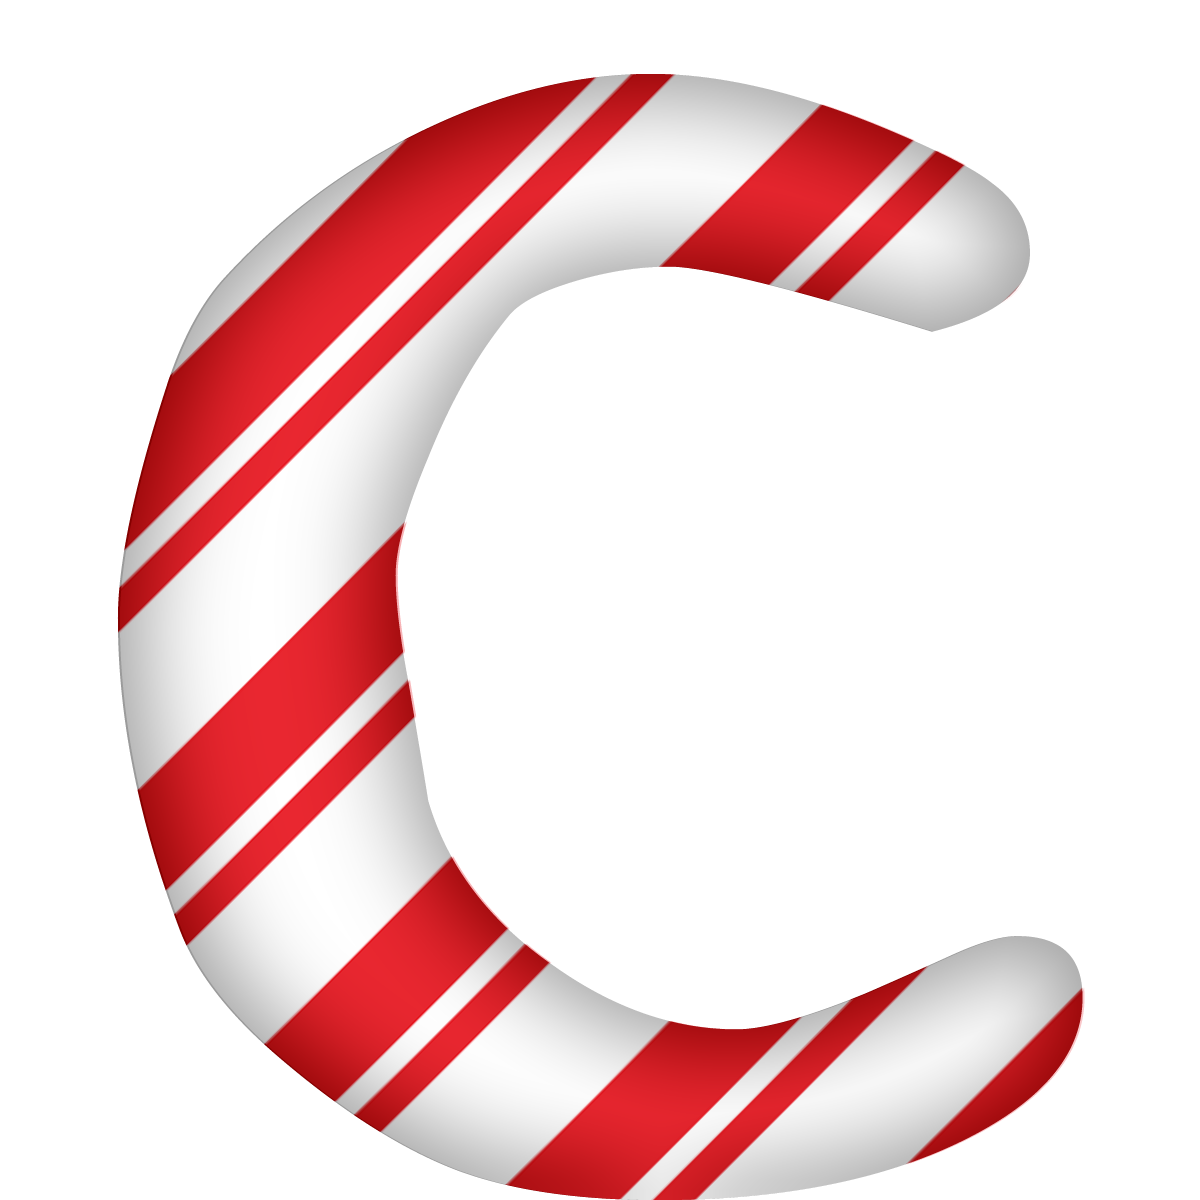 Peppermint Candy Letter C Png  U0026 Free Peppermint Candy